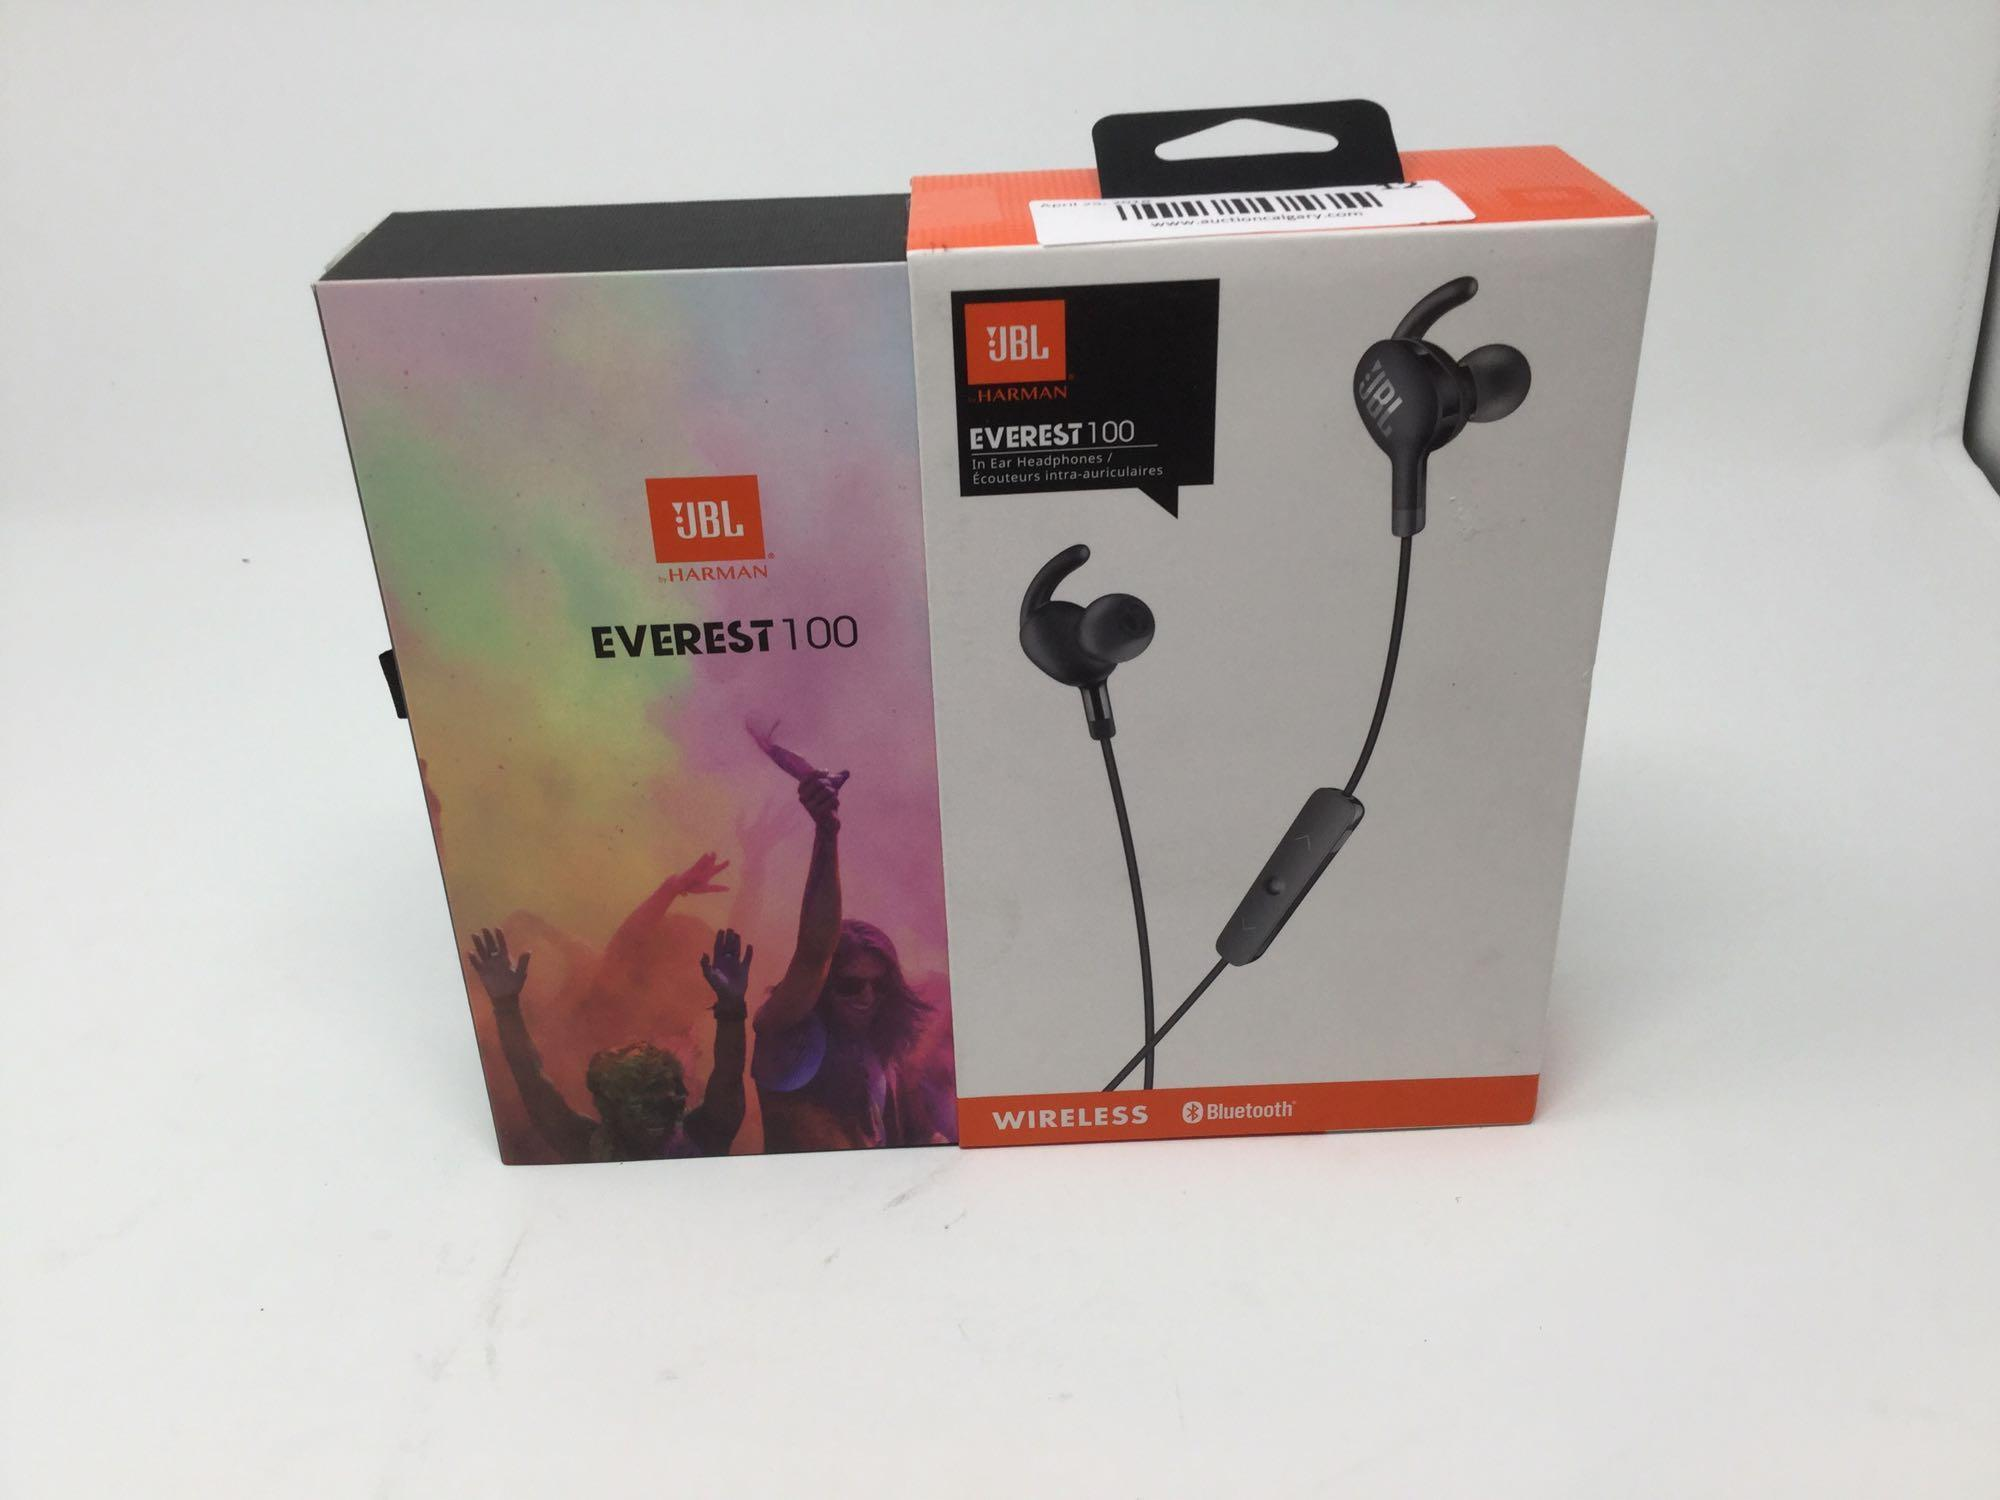 Lot 12 - Everest 100 In-Ear Headphones -Wireless, Bluetooth